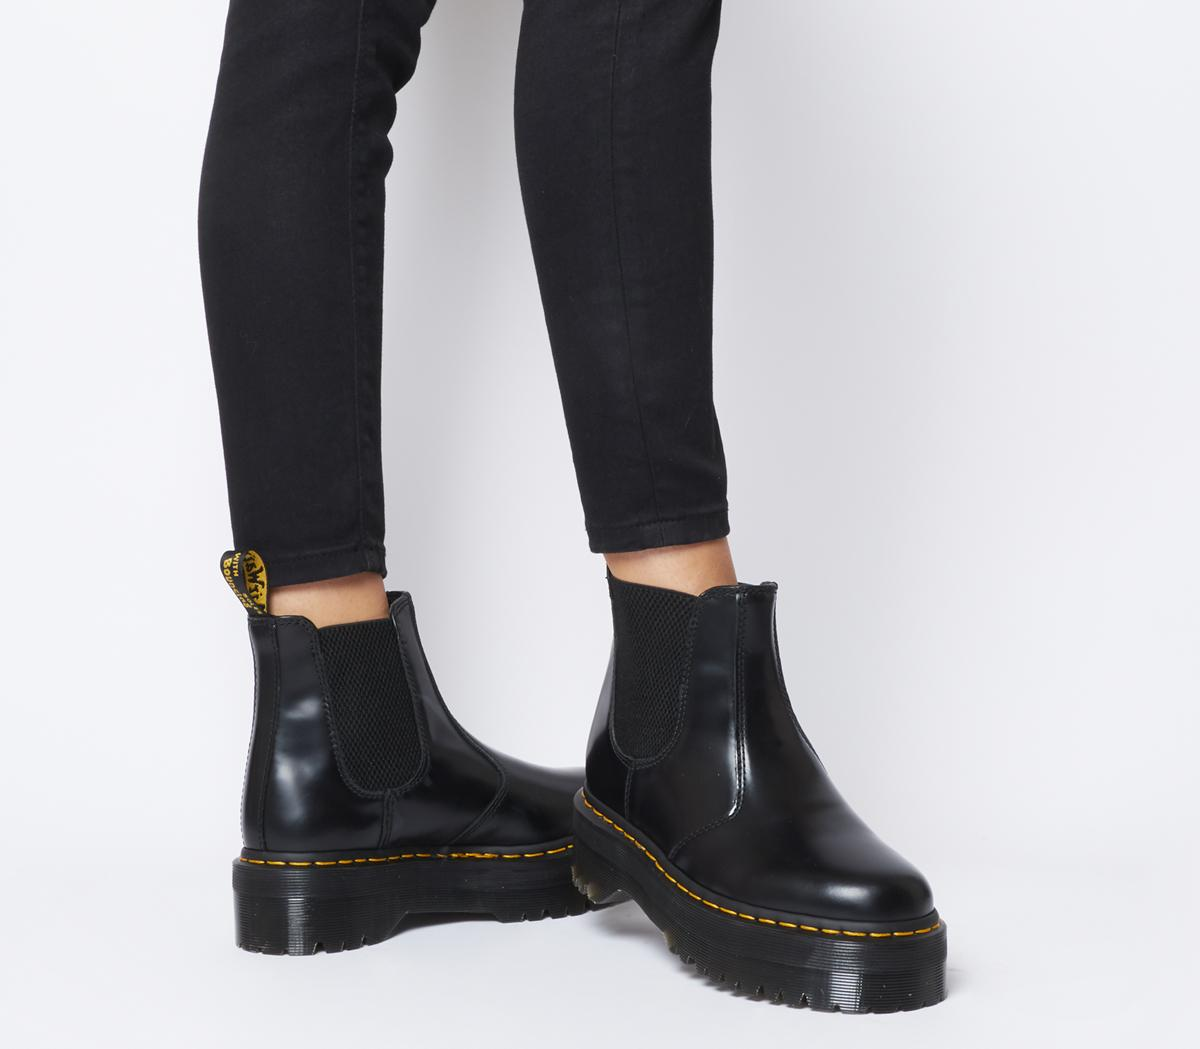 dr martens chelsea boot review